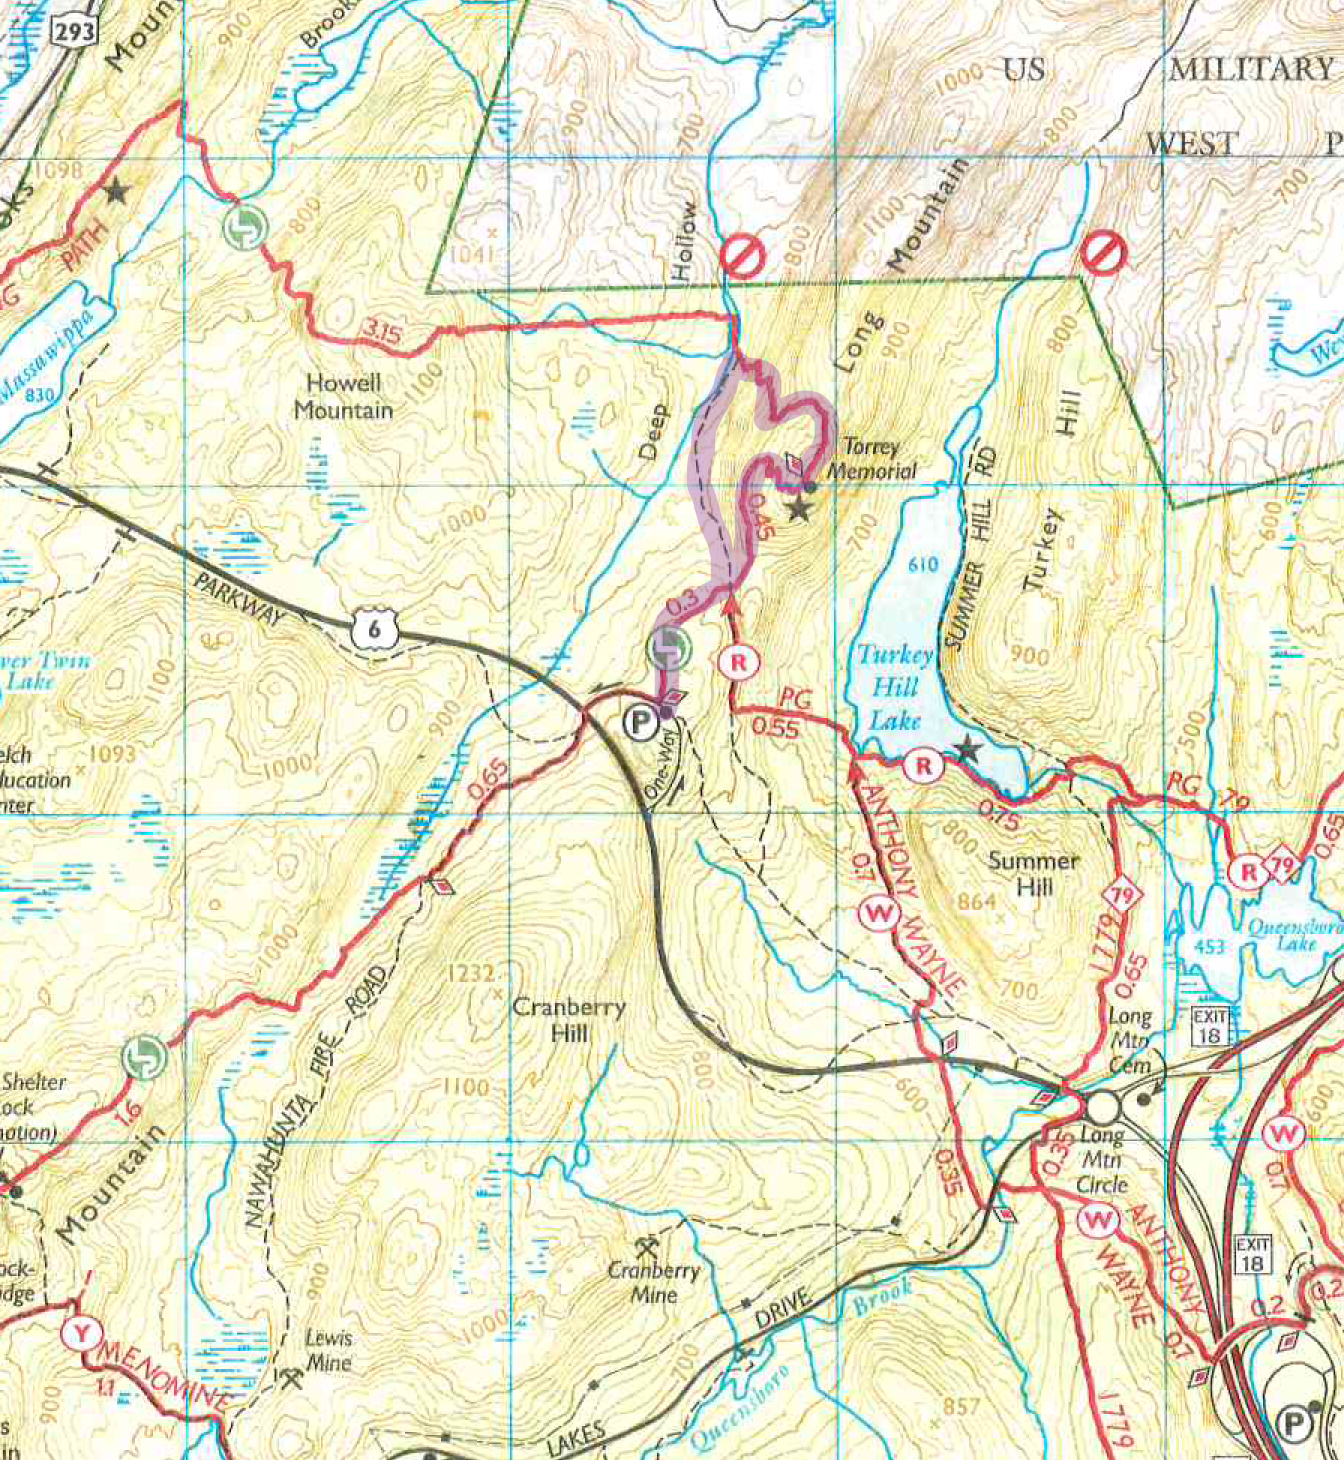 Directions for Hiking Long Mountain with Kids